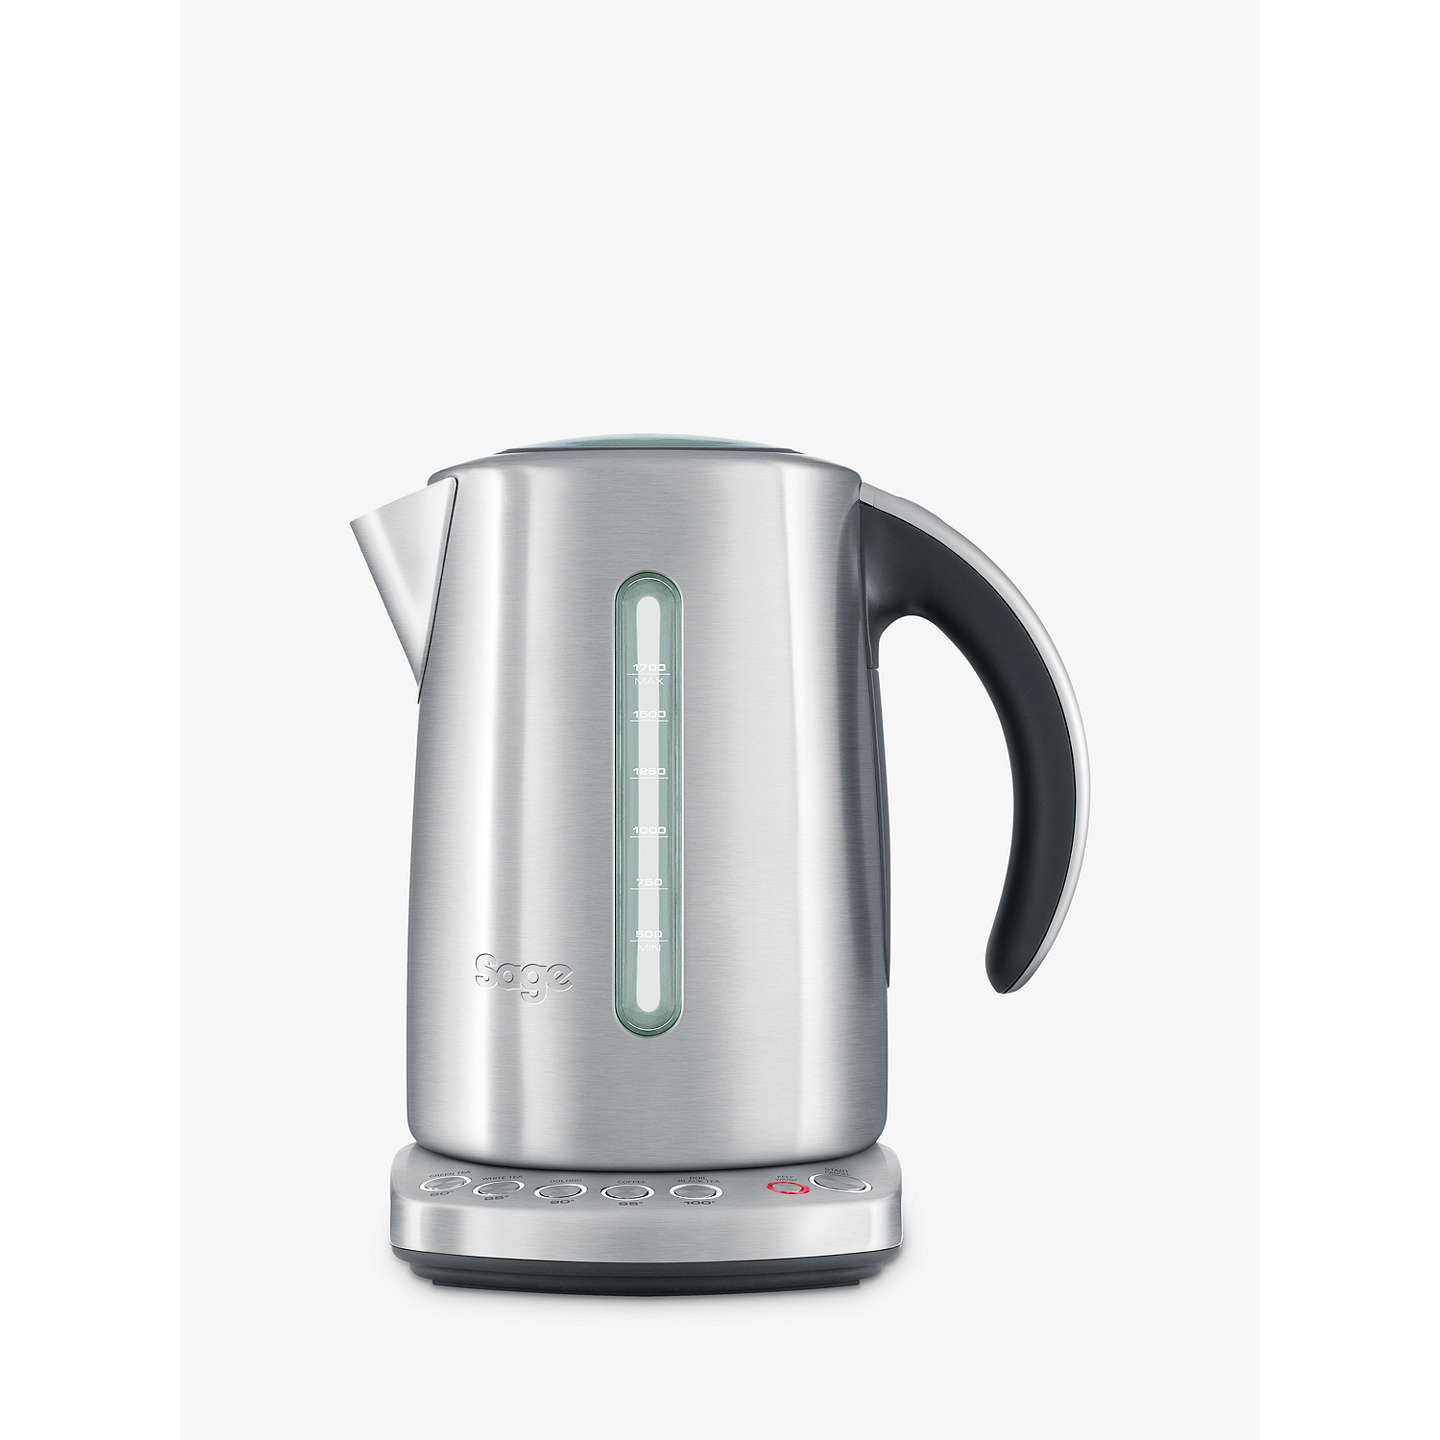 Sage by Heston Blumenthal the Smart Kettle at John Lewis